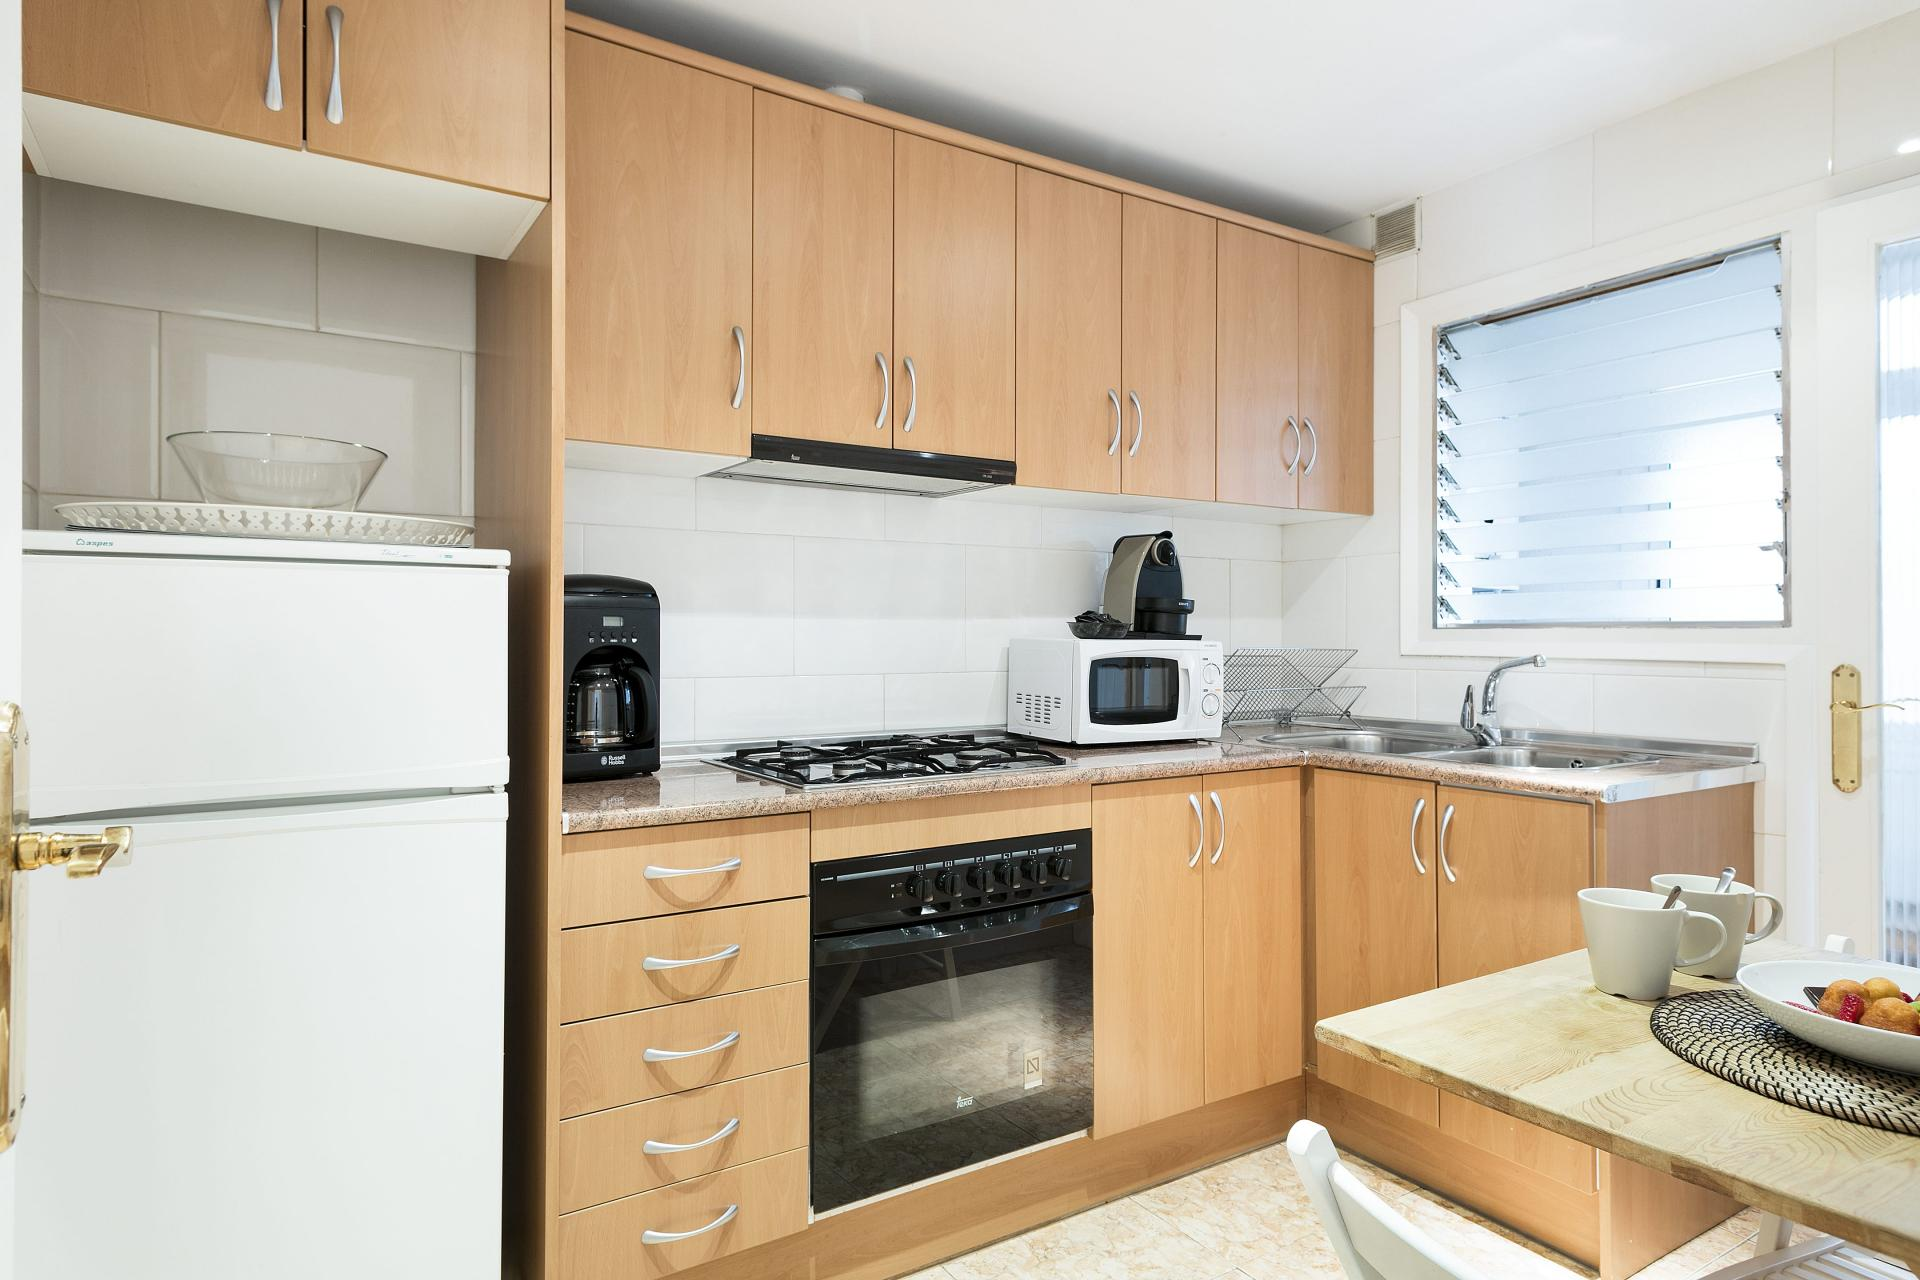 Modern kitchen at Sunny Serviced Apartments, Eixample, Barcelona - Citybase Apartments